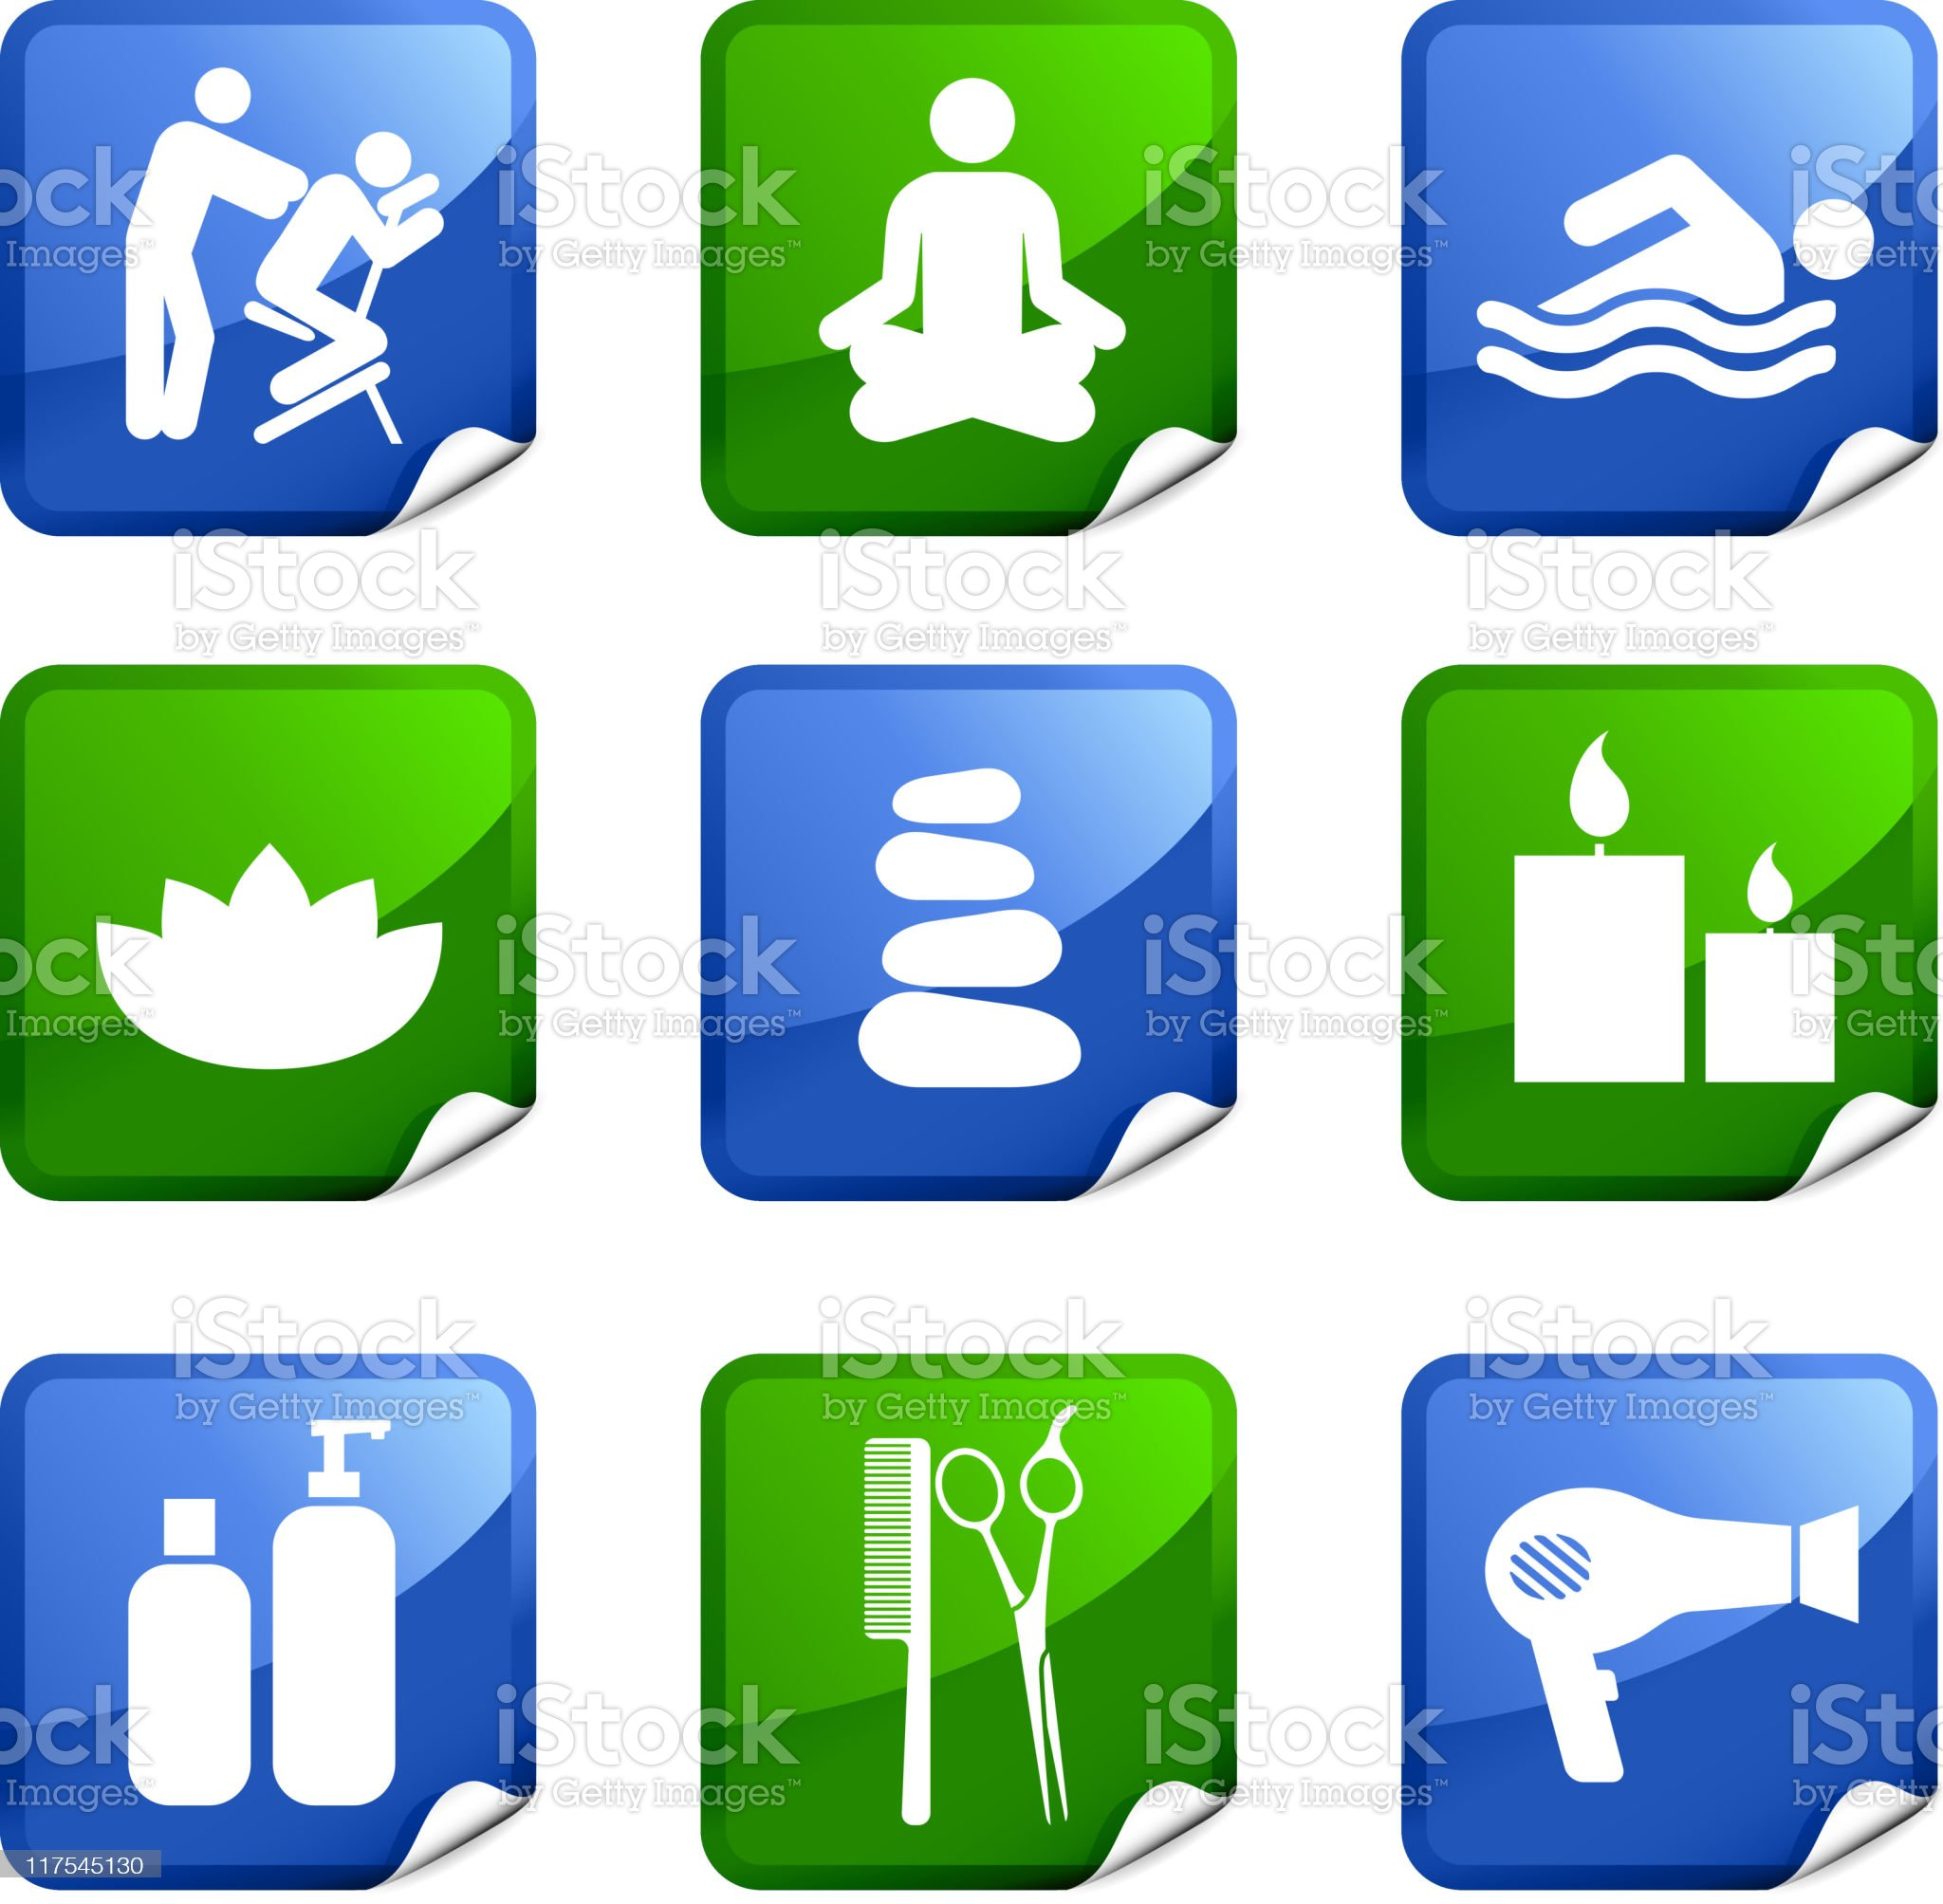 salon spa and relaxation nine royalty free vector icon set royalty-free stock vector art